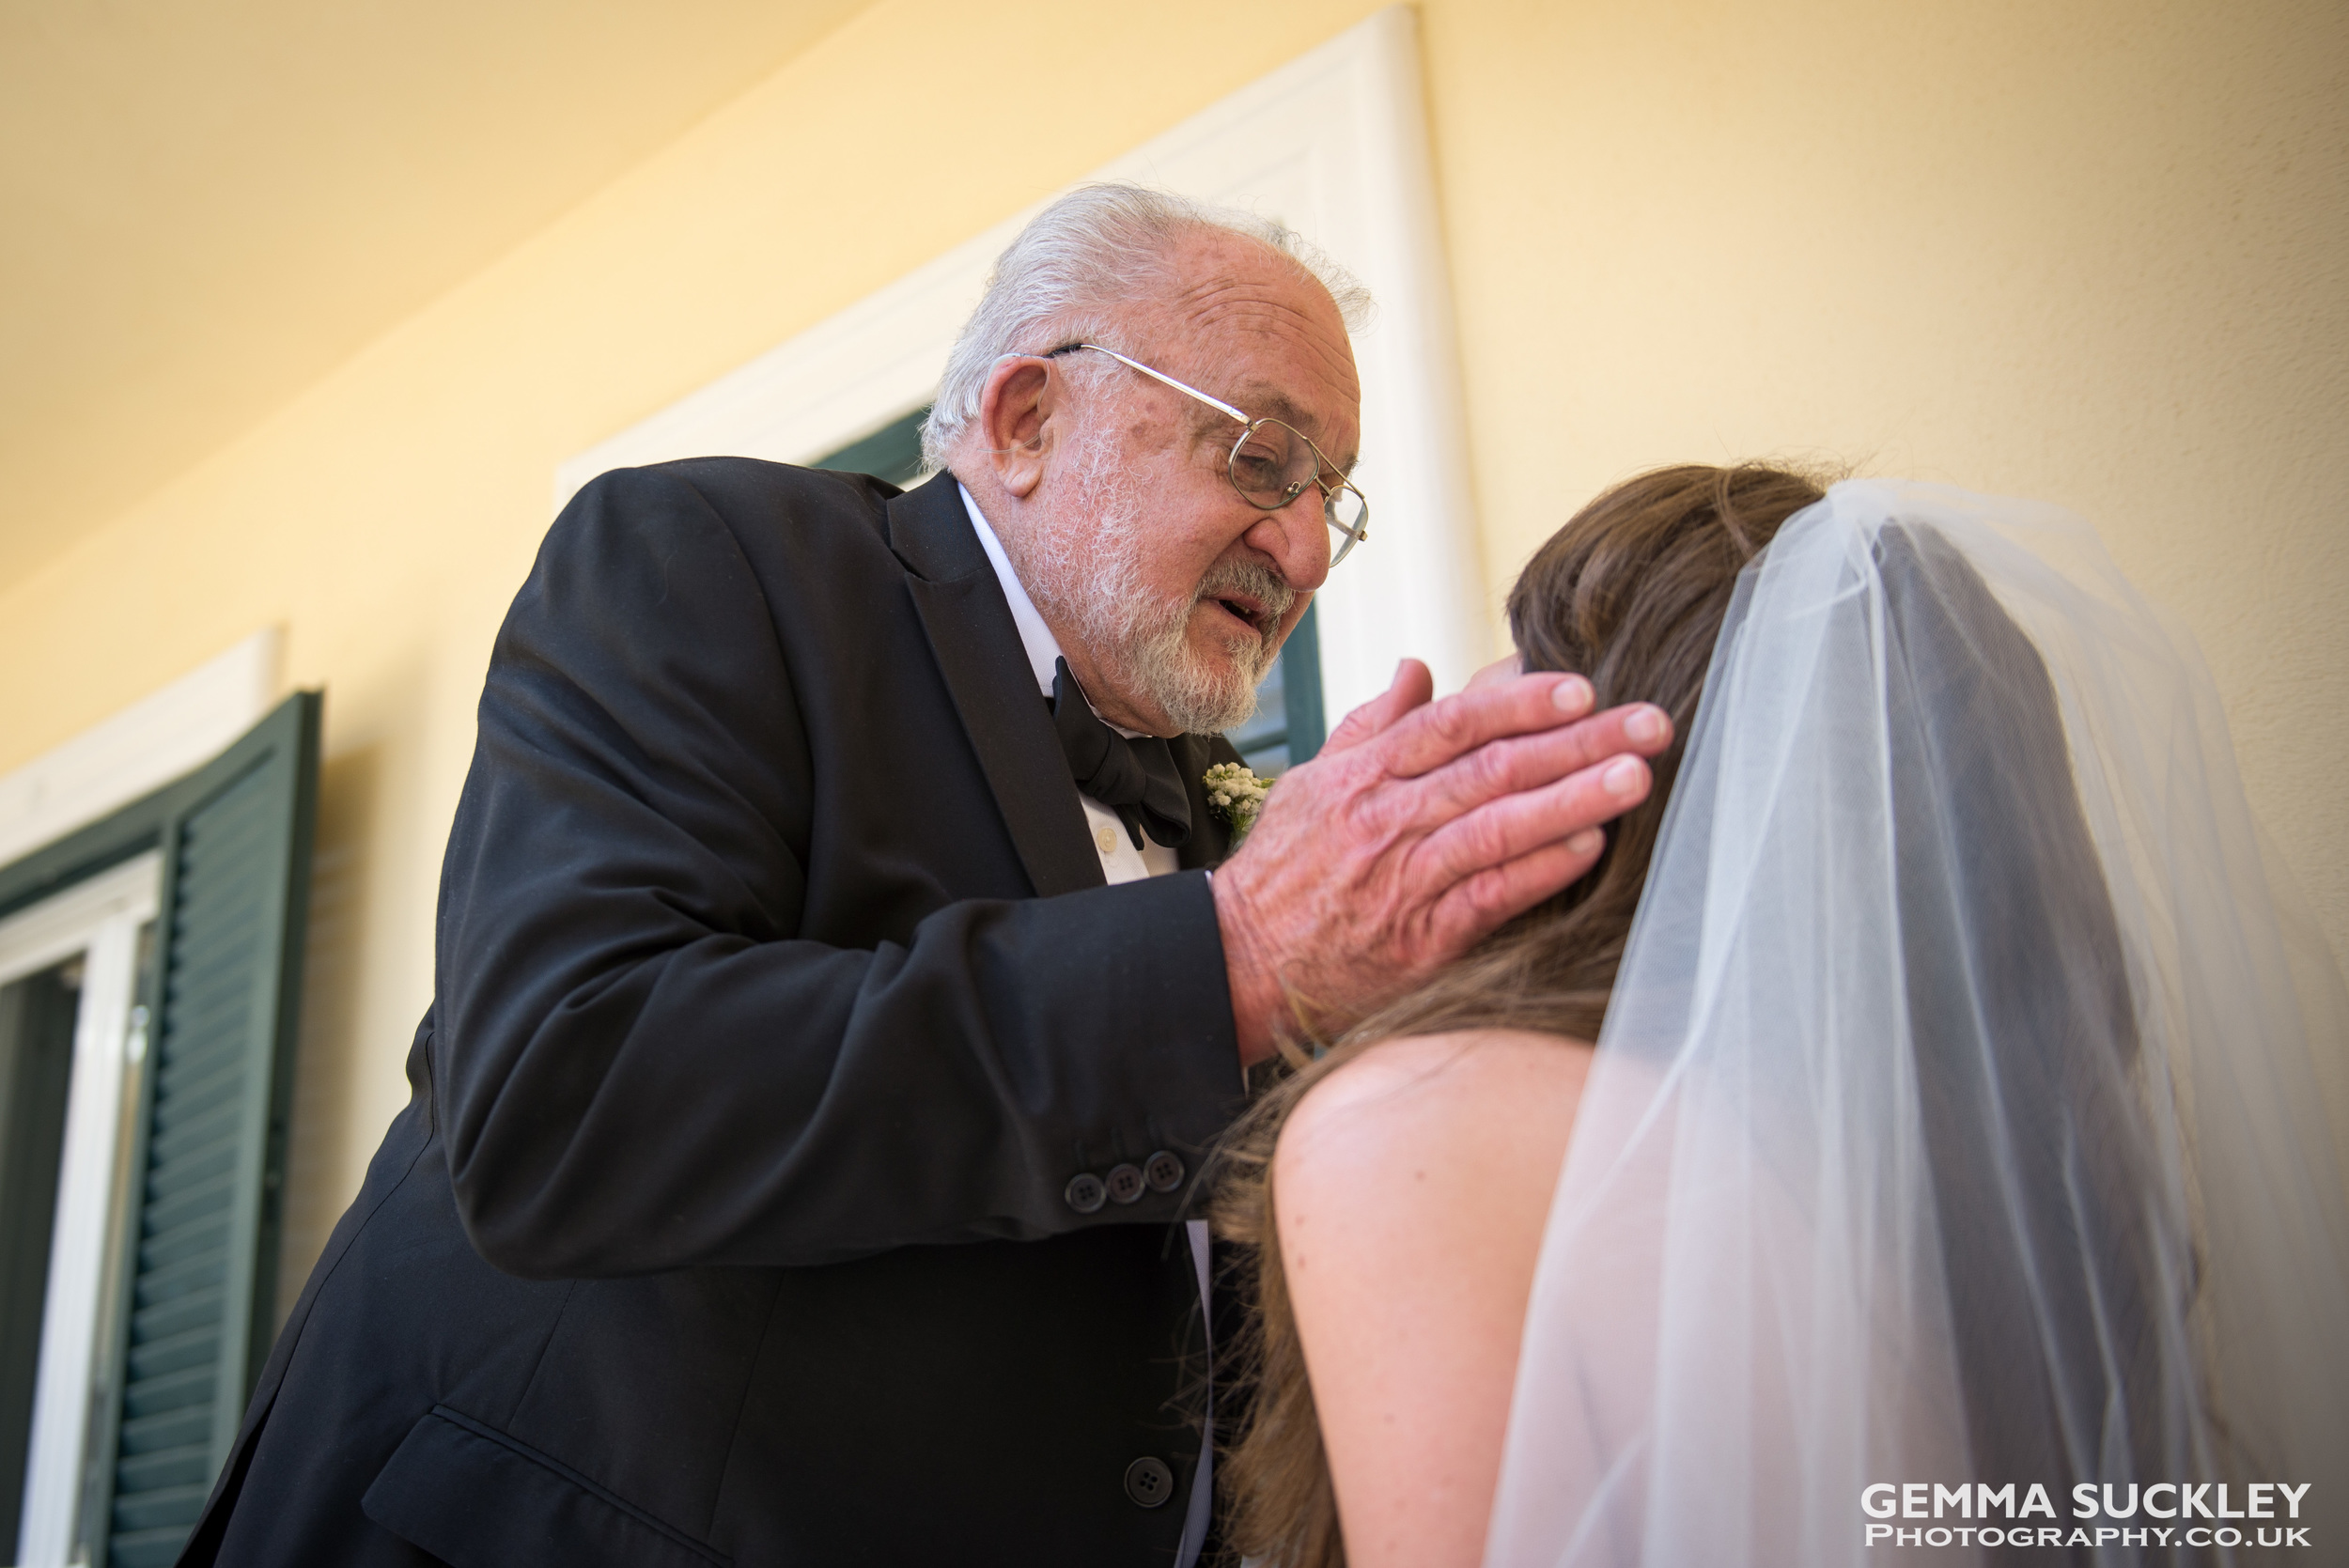 father-of-the-bride-1st-look-gemma-suckley-photography.jpg